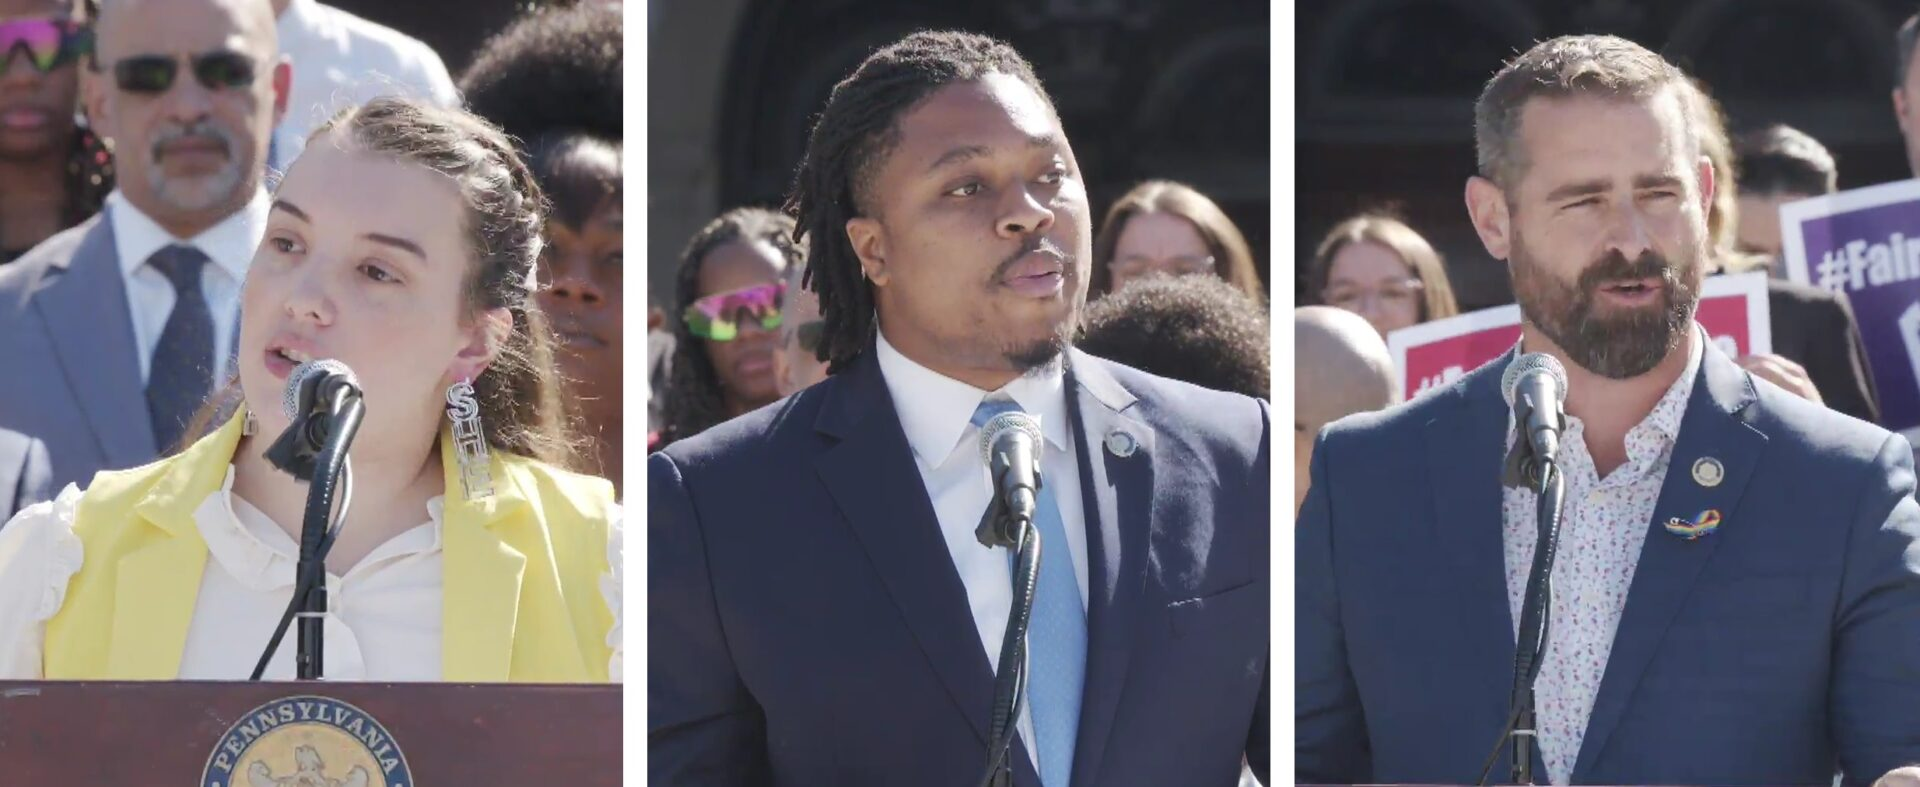 From left, state Reps. Jessica Benham, Malcolm Kenyatta and Brian Sims, the three openly gay members of the state legislature, speak about the Fairness Act during a news conference at the state Capitol on Tuesday, June 15, 2021. (Source: Pa.gov)